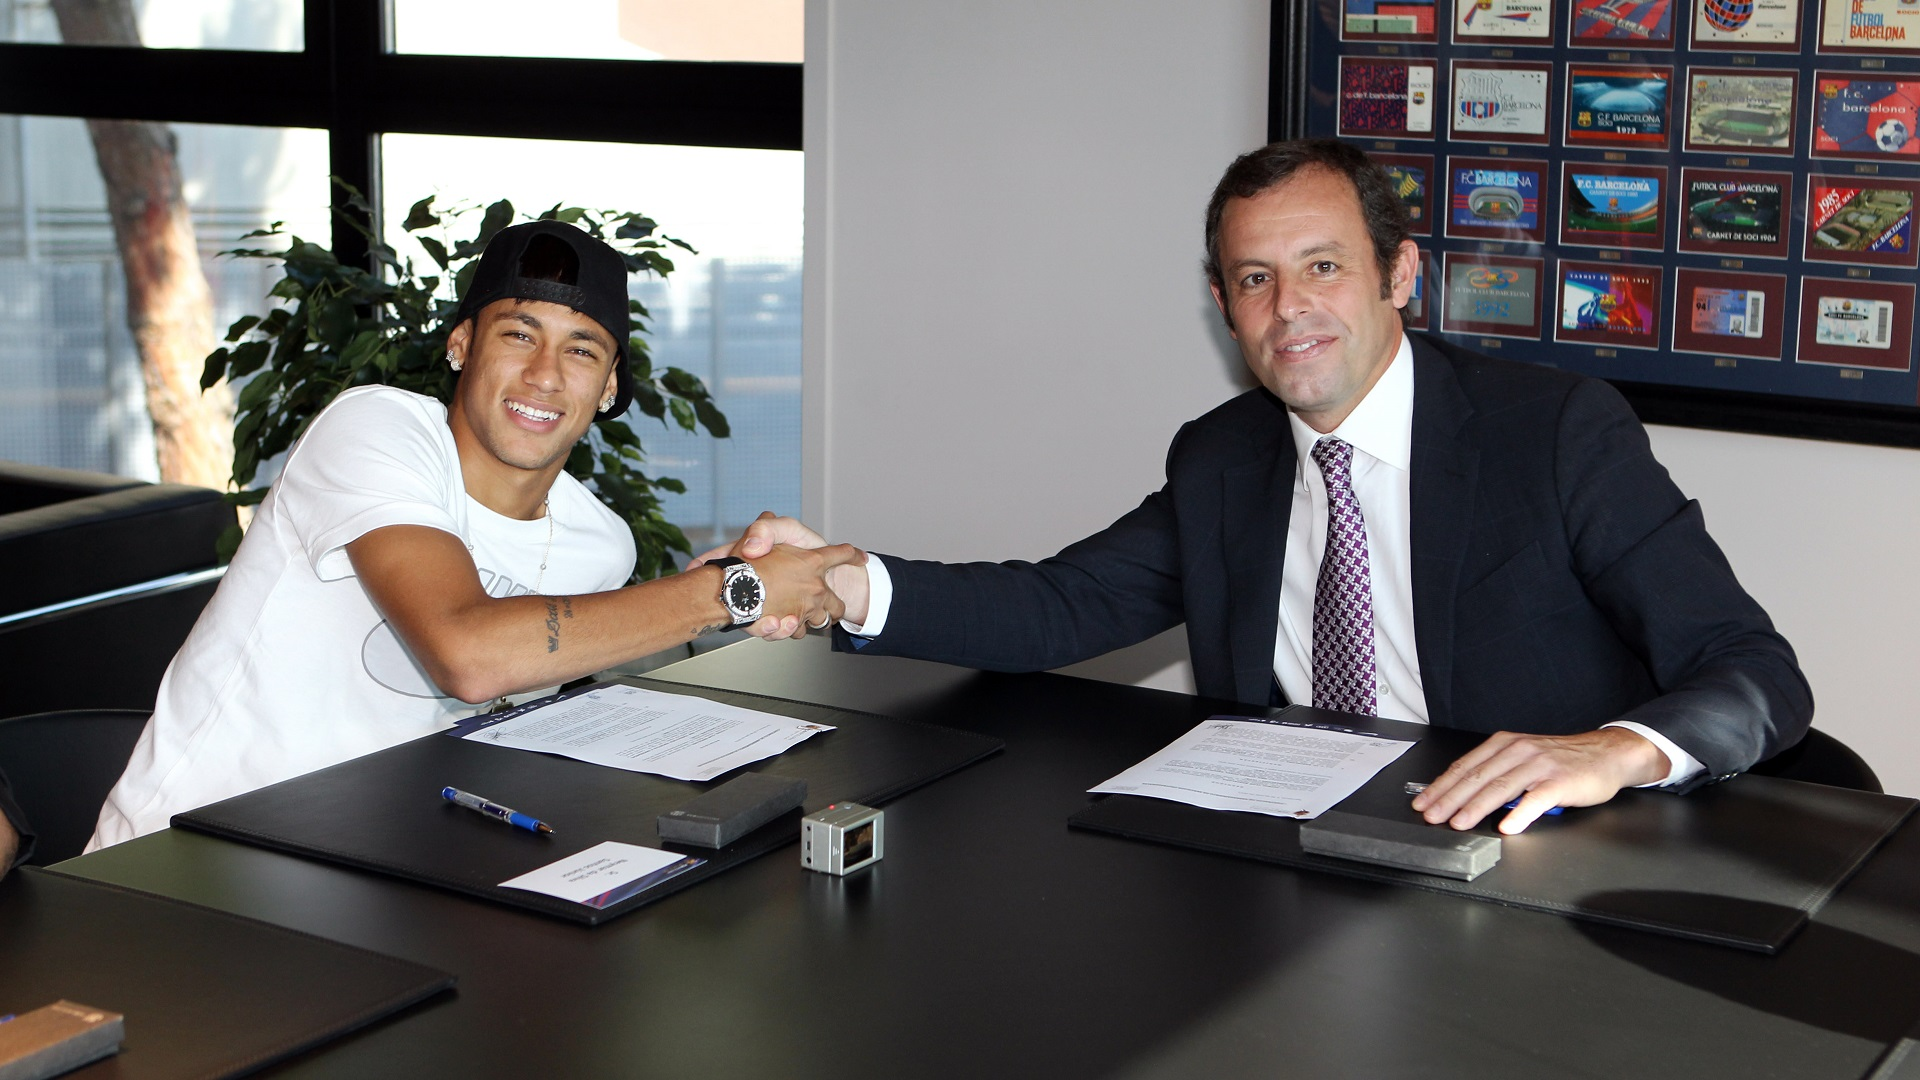 Neymar signing his new 5-year contract with Barcelona and Sandro Rosell